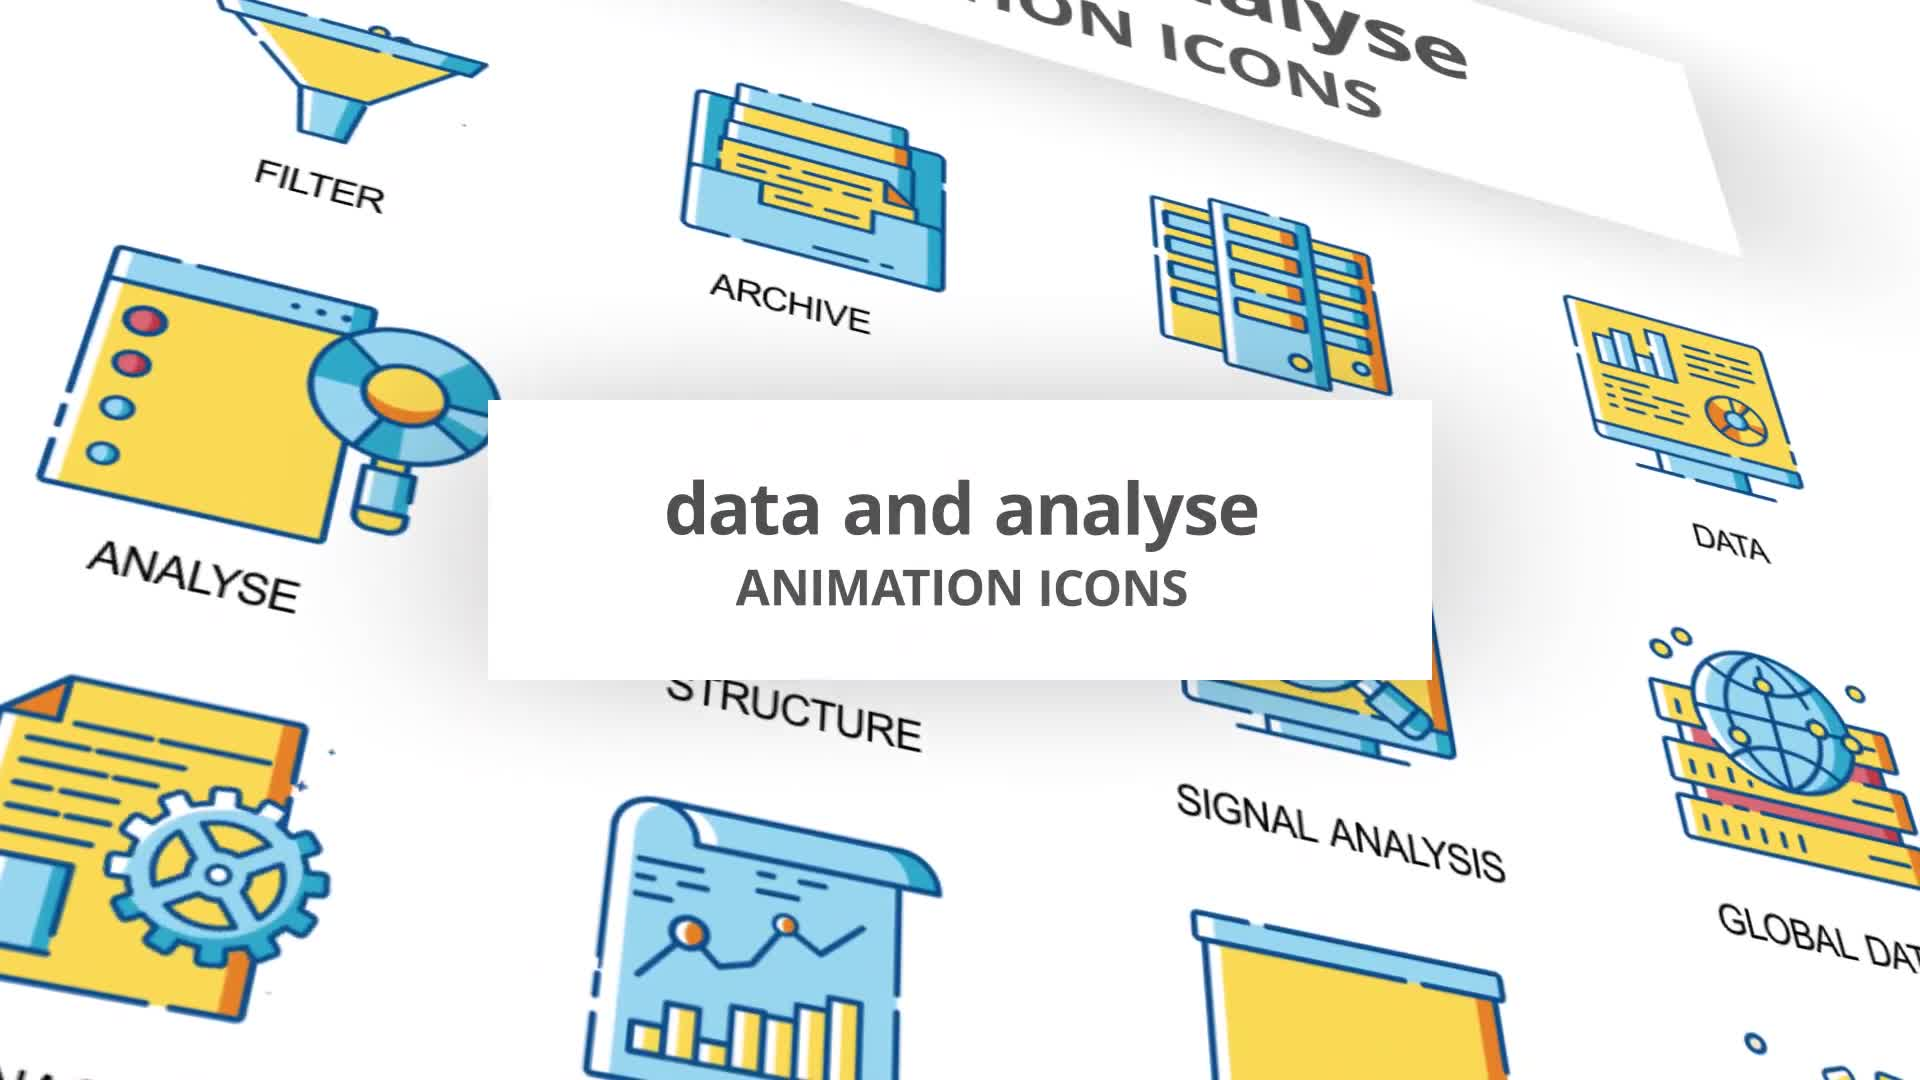 Data & Analyse Animation Icons Videohive 30260836 After Effects Image 1